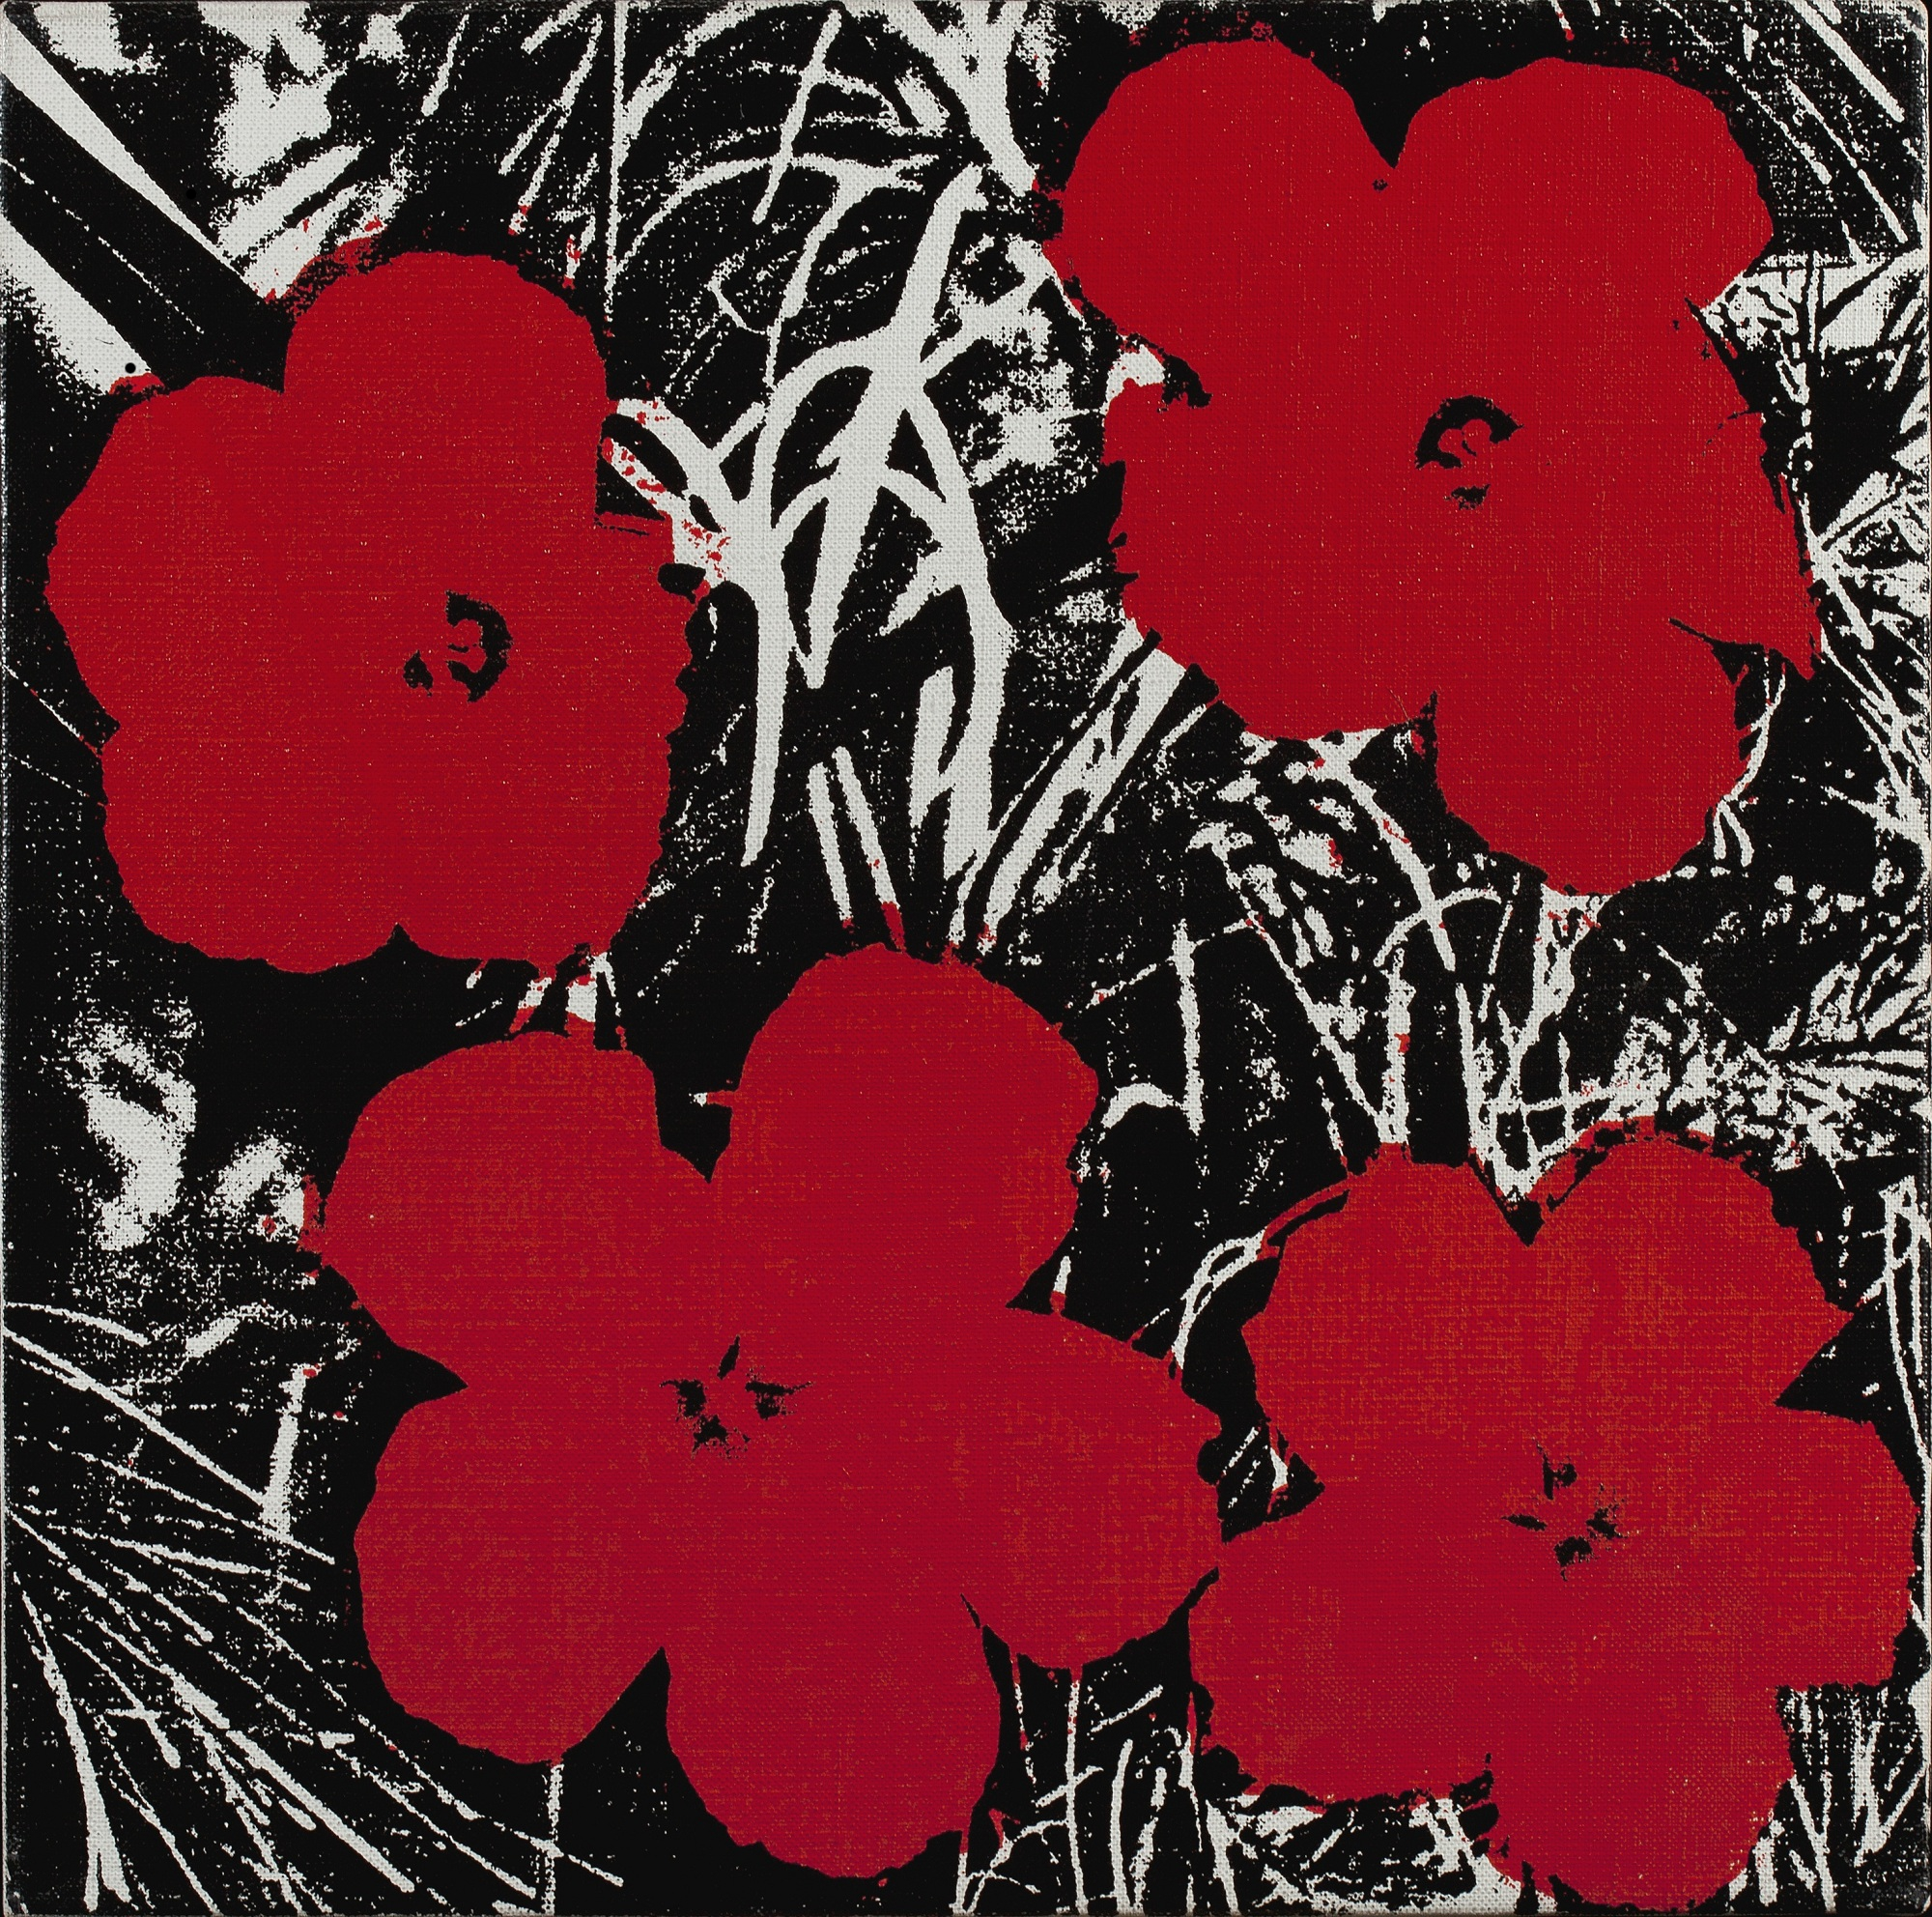 12 Inch Flower Painting Andy Warhol